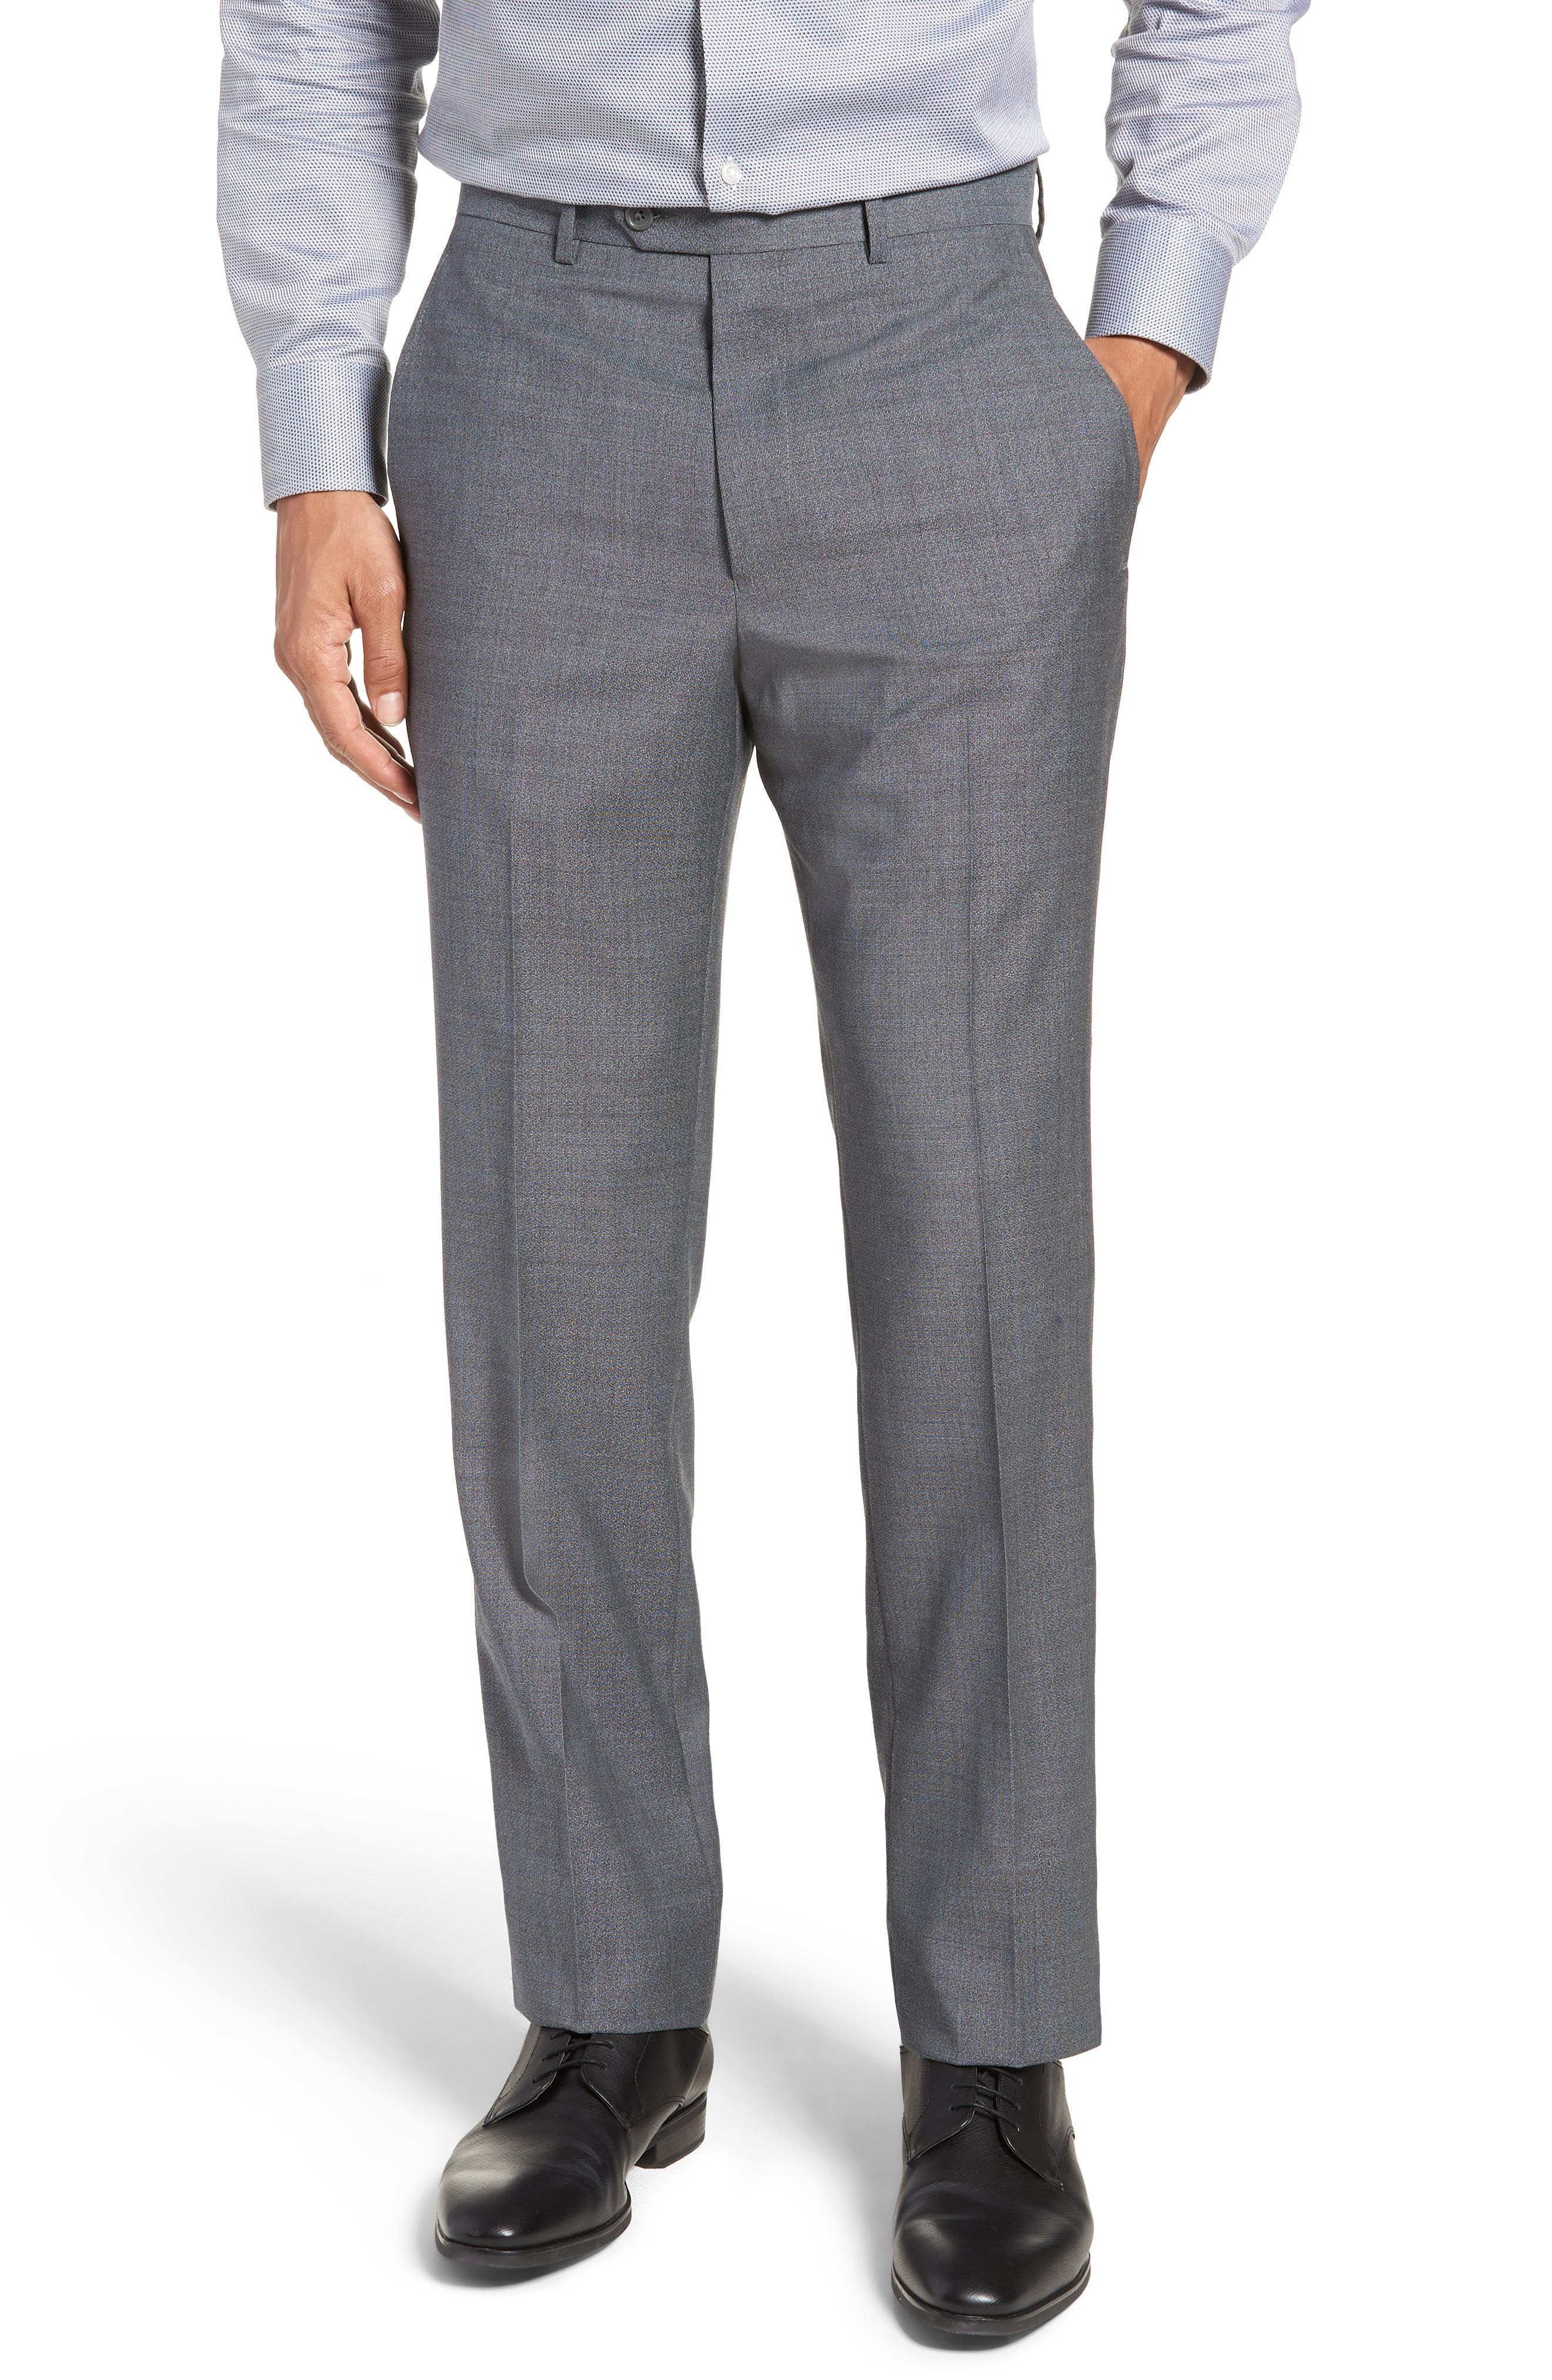 SANTORELLI Flat Front Solid Wool Trousers, Main, color, 020